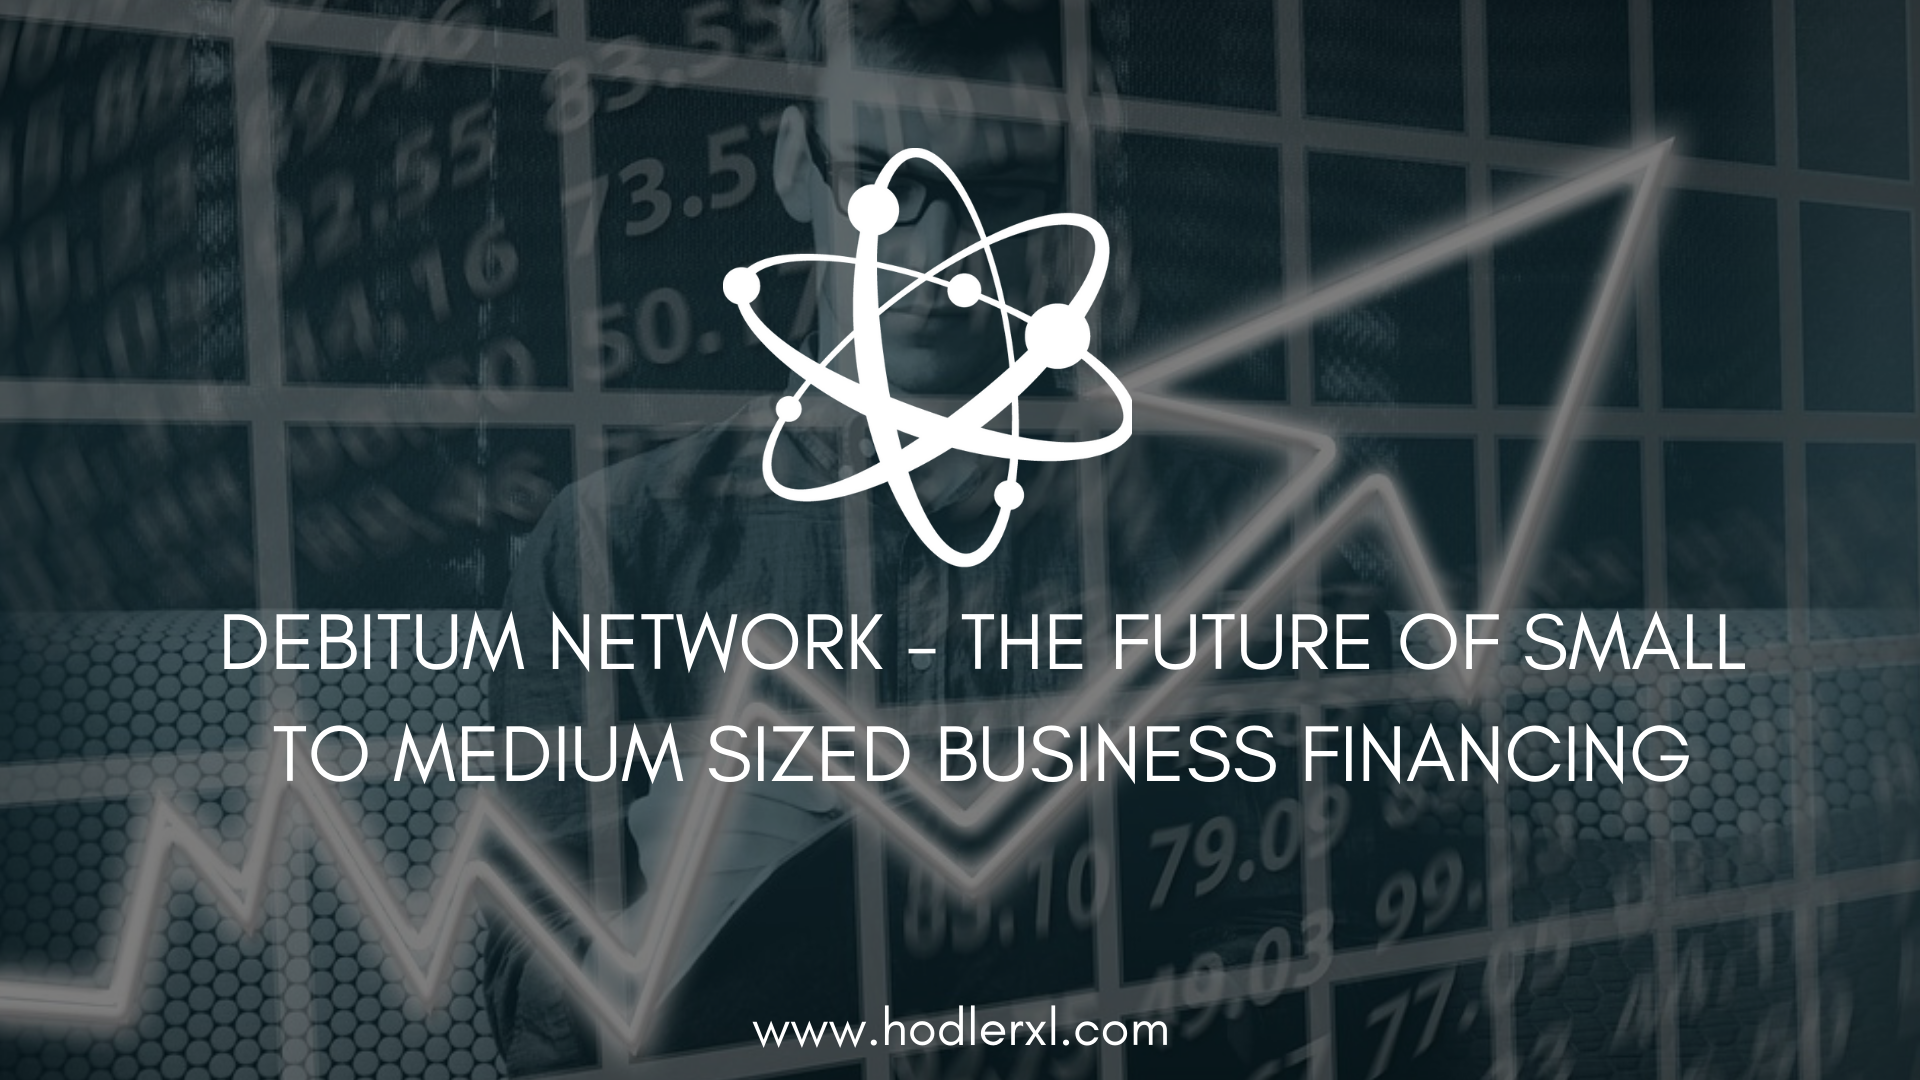 Debitum Network - The Future Of Small To Medium Sized Business Financing